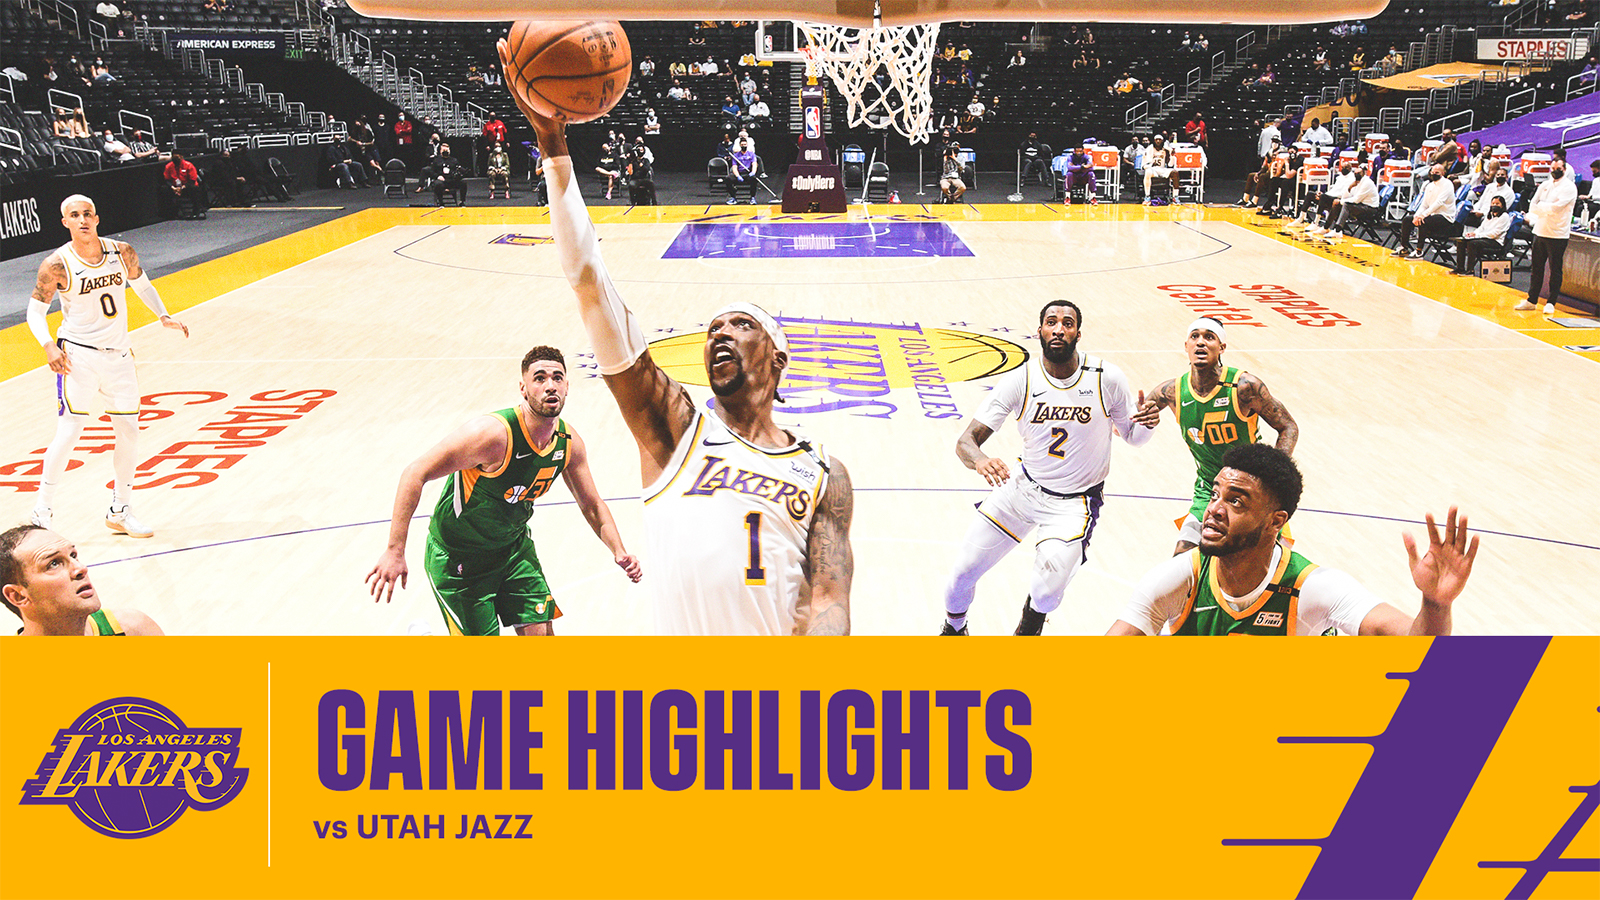 HIGHLIGHTS | Kentavious Caldwell-Pope (25 pts, 5 rebs, 2 asts) vs Utah Jazz